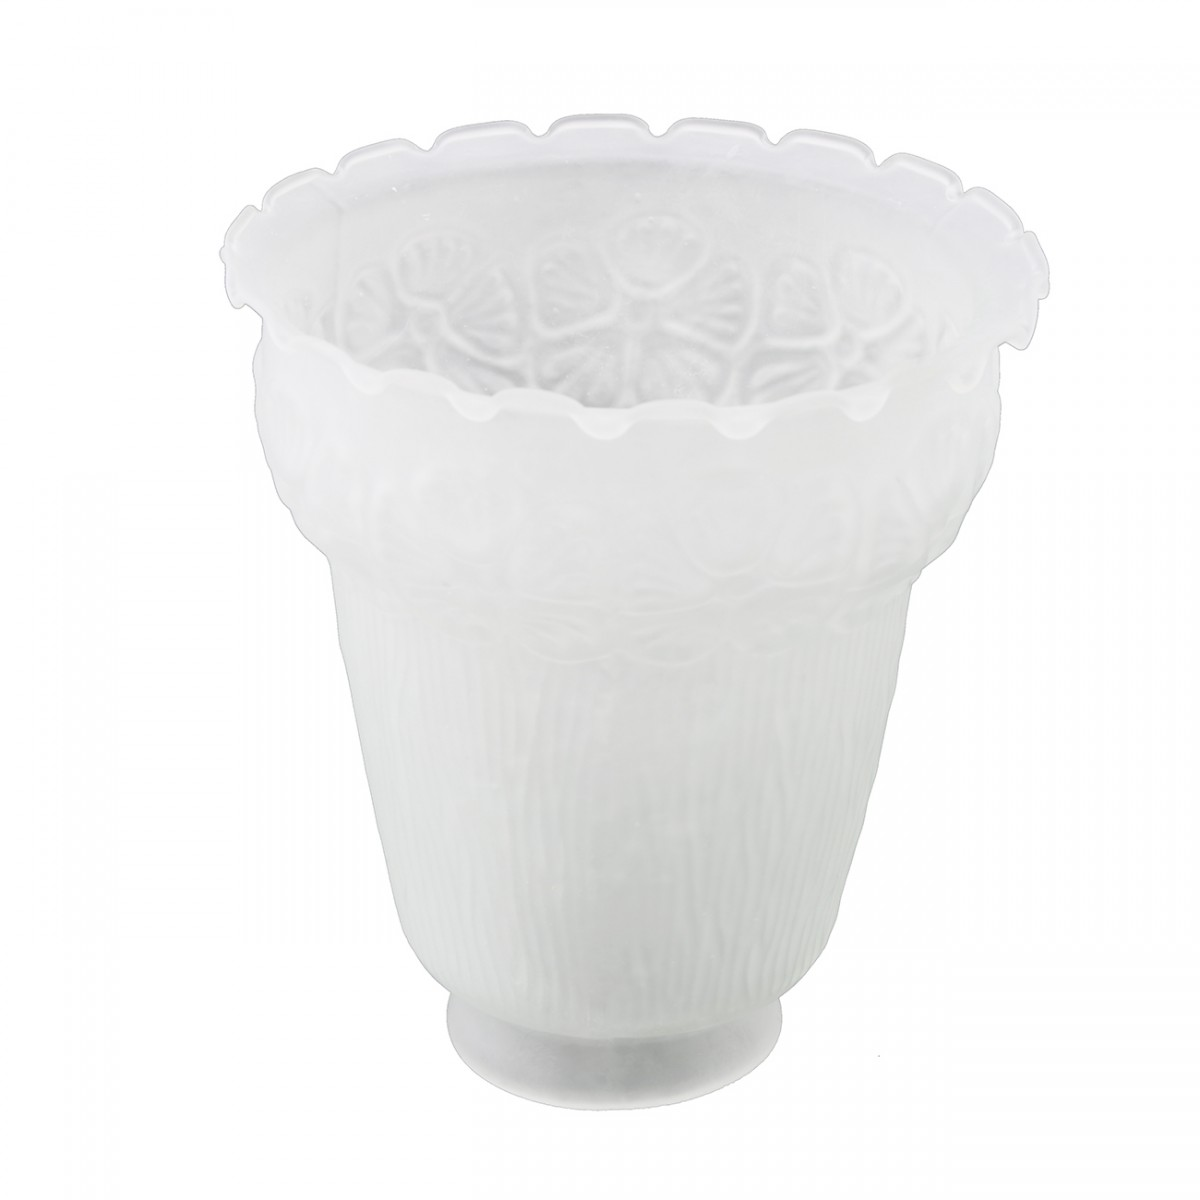 2 Lamp Shade Frosted Glass Flowers Bell 5 12 H 2 14 Fitter Lamp Shades Lamp Shade Glass Lamp Shade